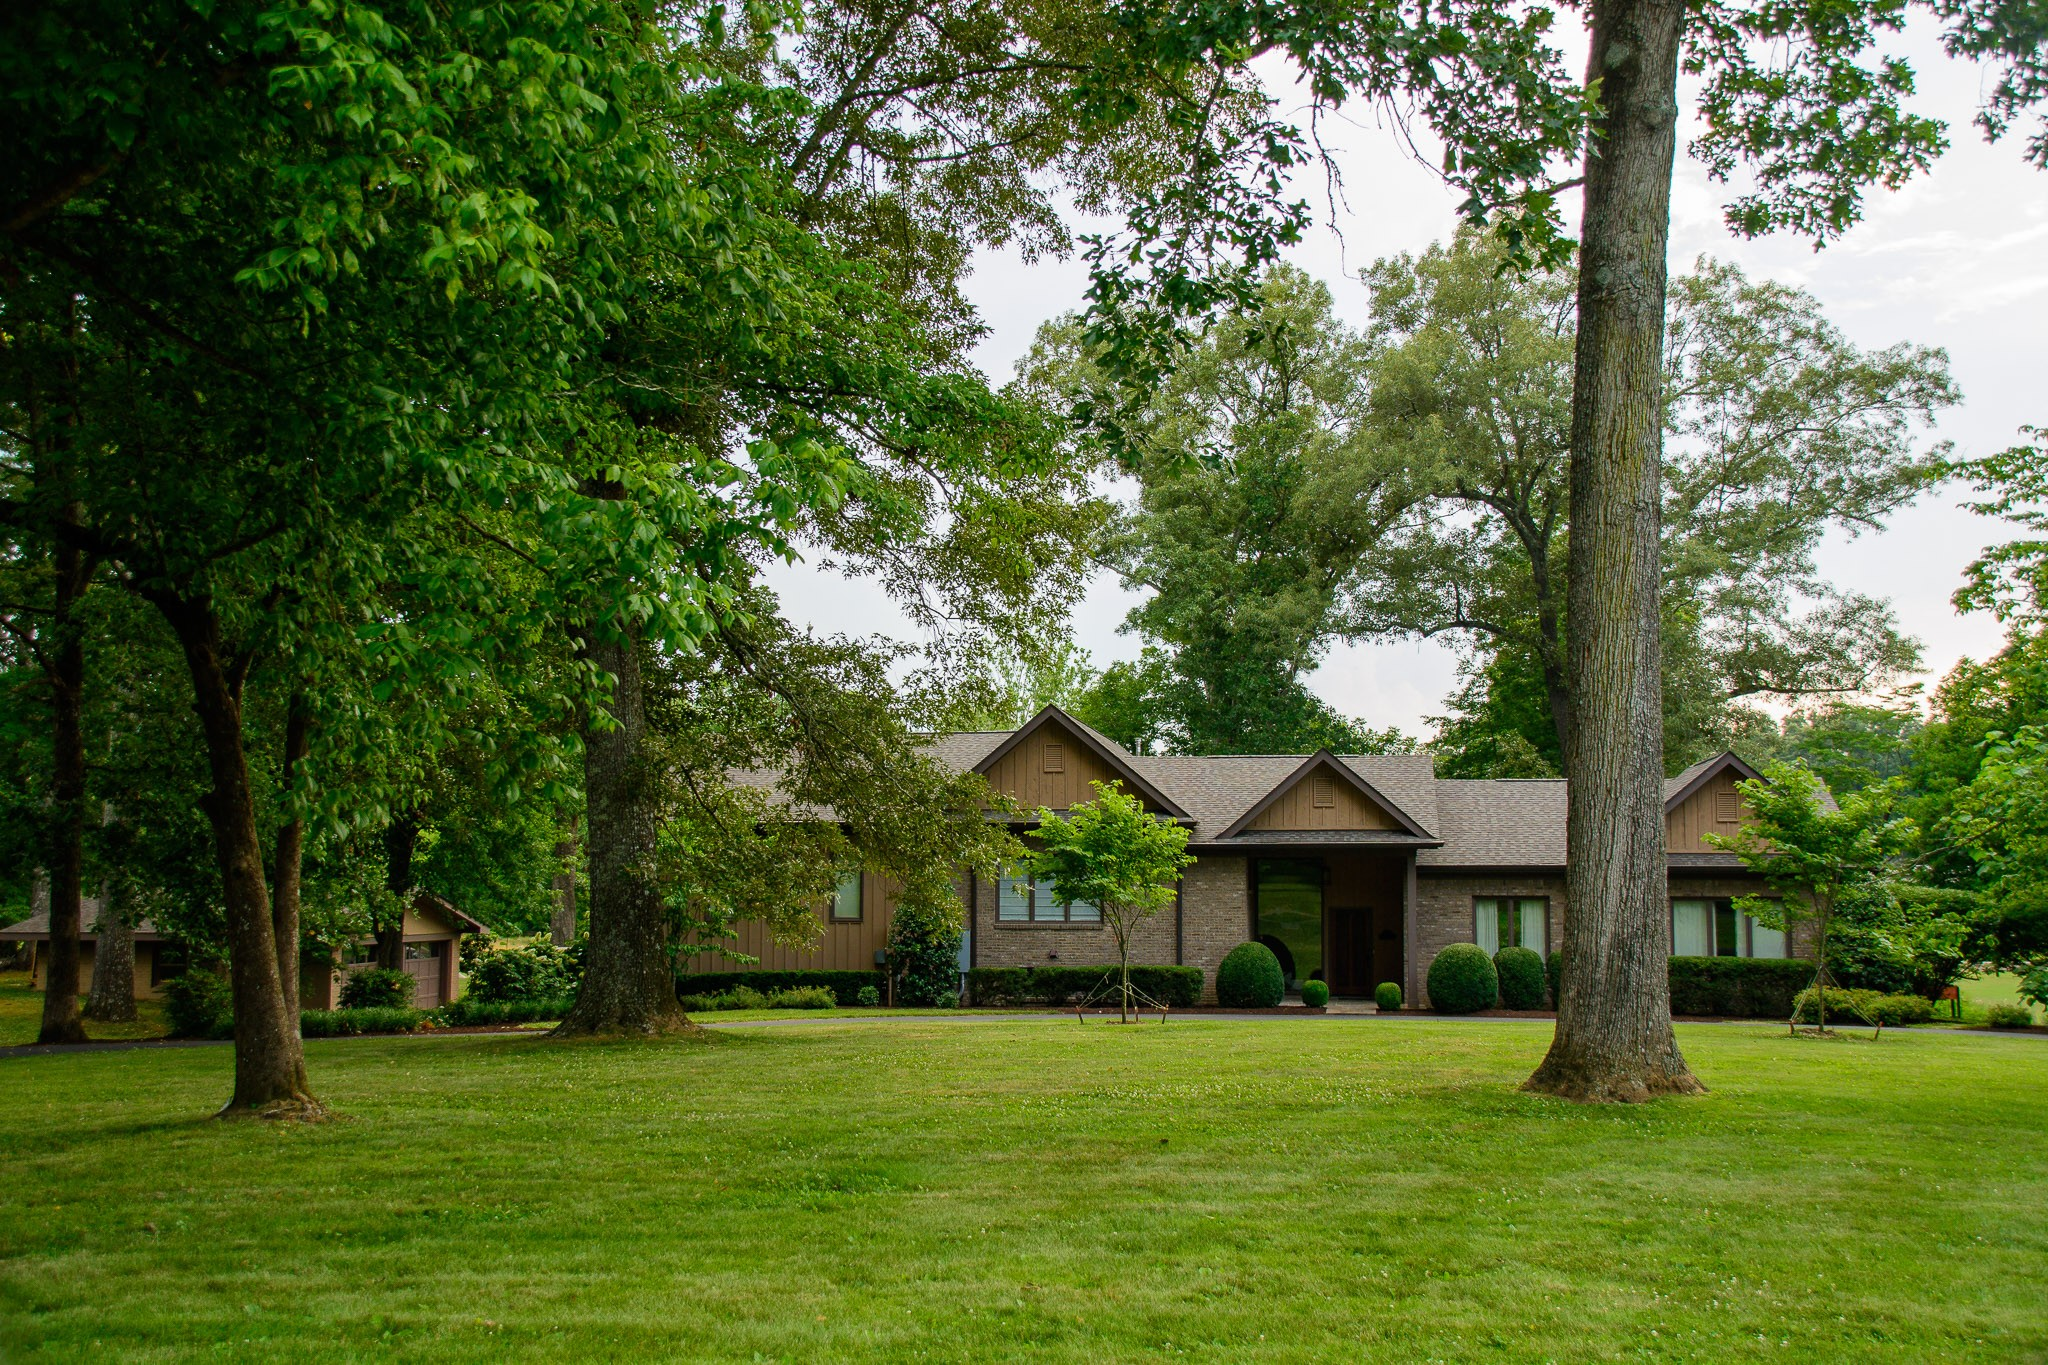 109 LAKEWOOD DRIVE Property Photo - Tullahoma, TN real estate listing